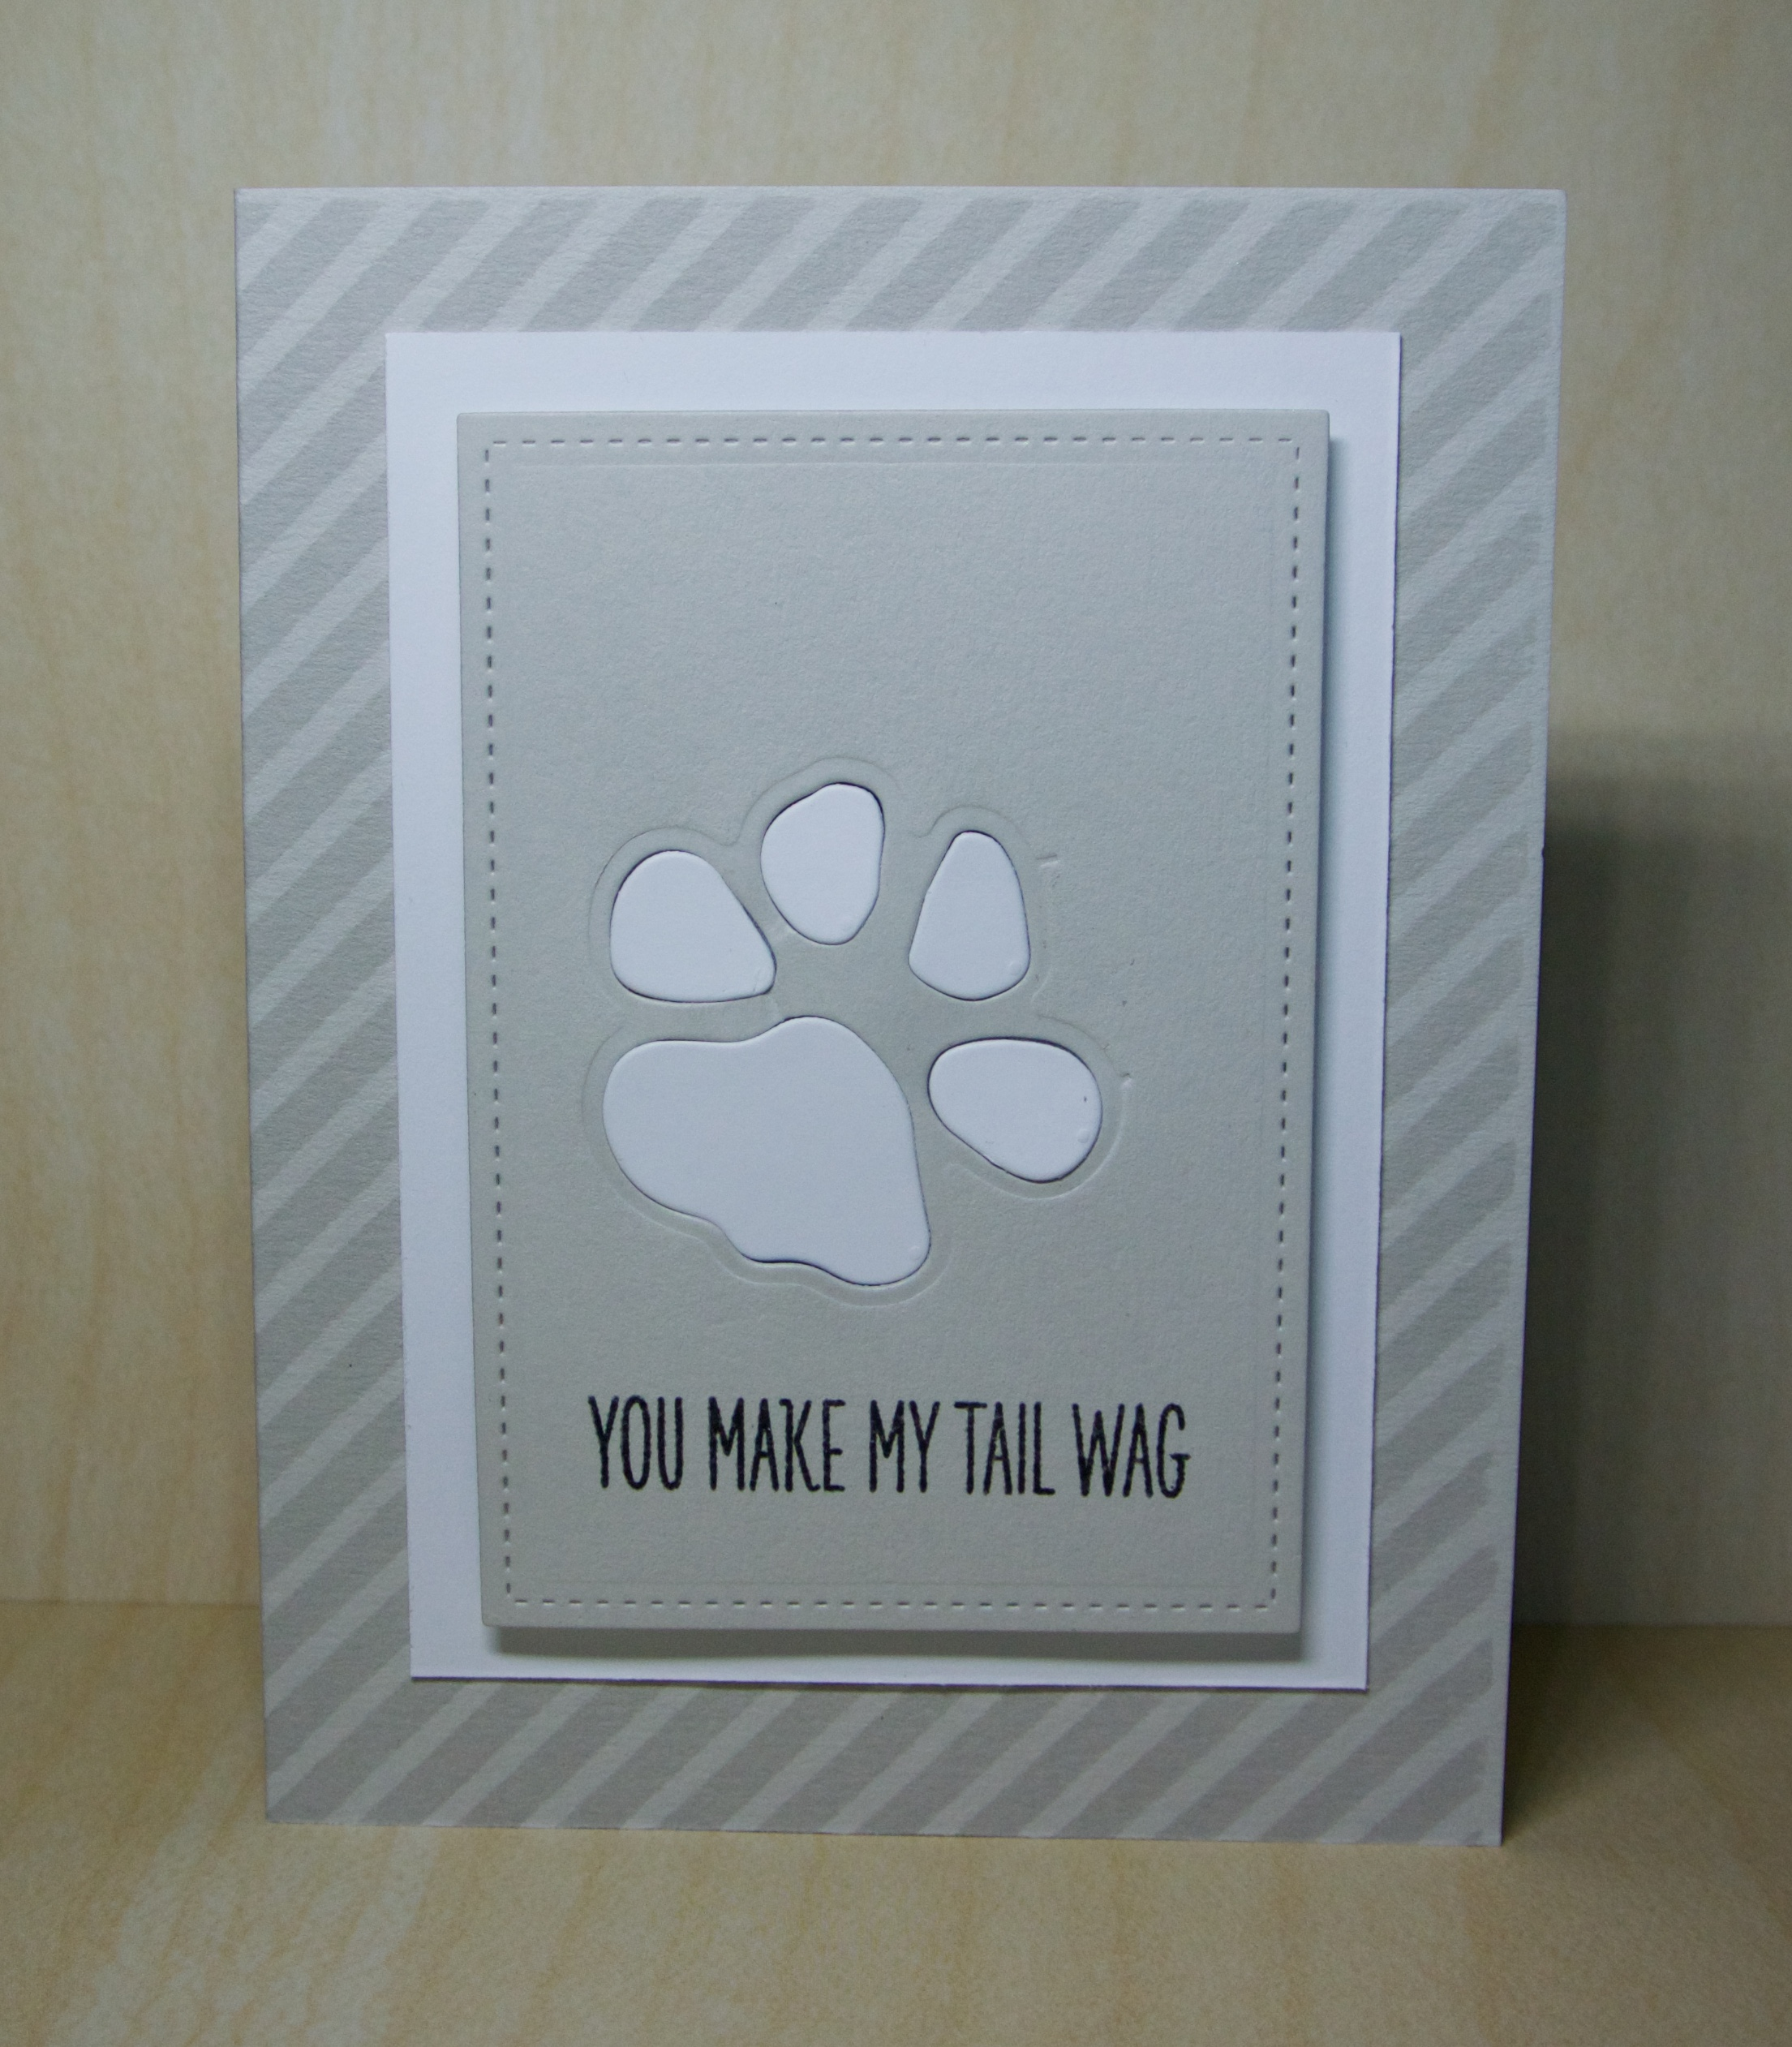 Simon Says Stamp Paw die cut, white inlaid in fog. My Favorite Things sentiment.